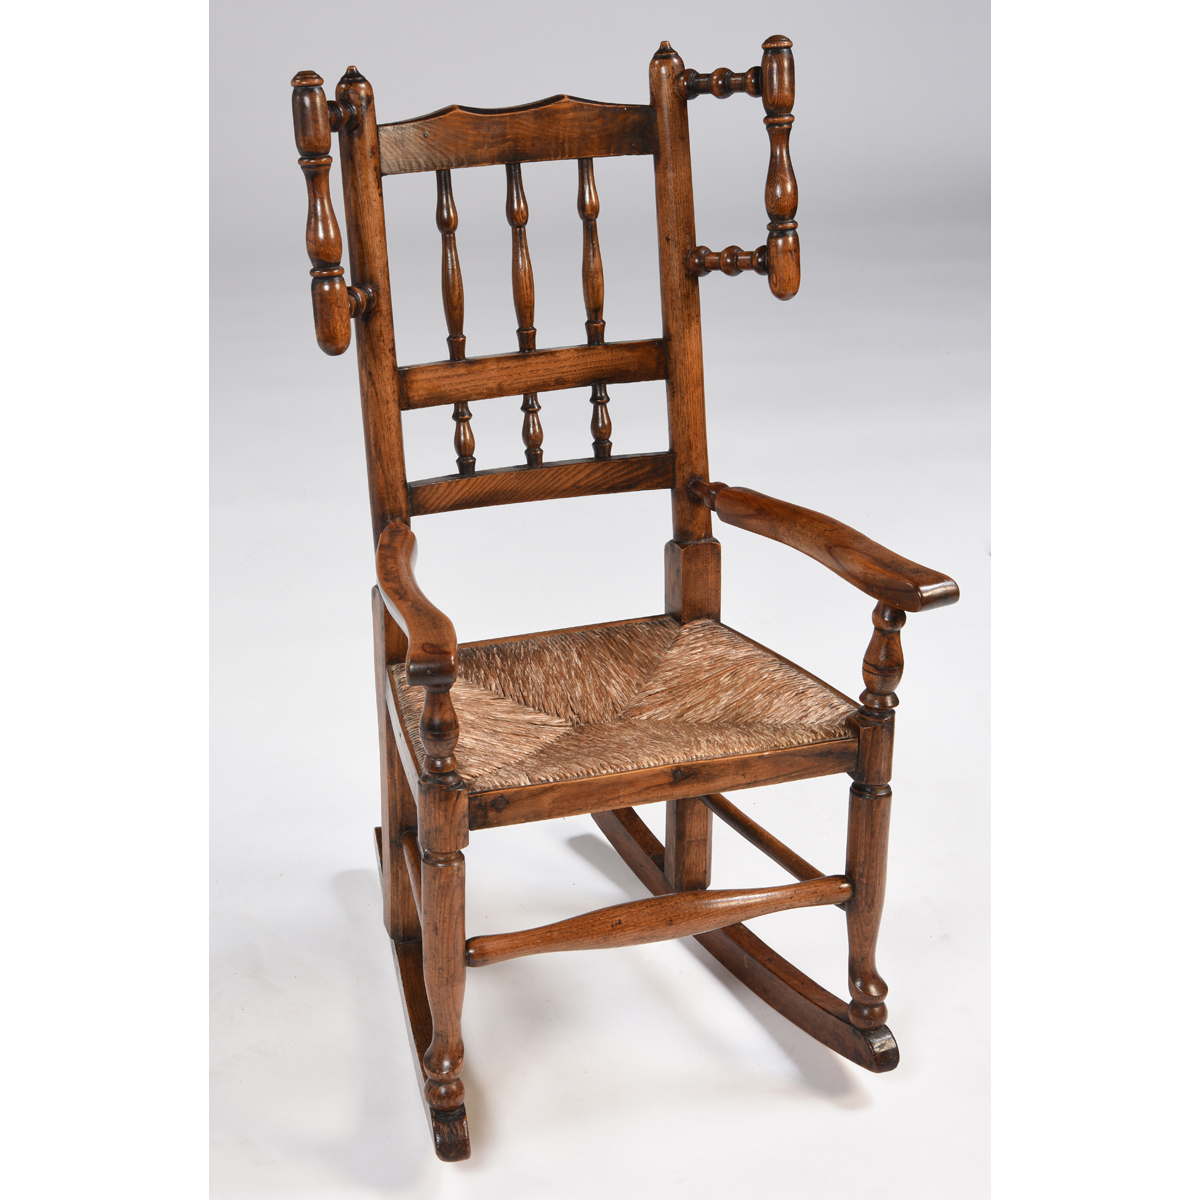 Antique English Childu0027s Rocking Chair